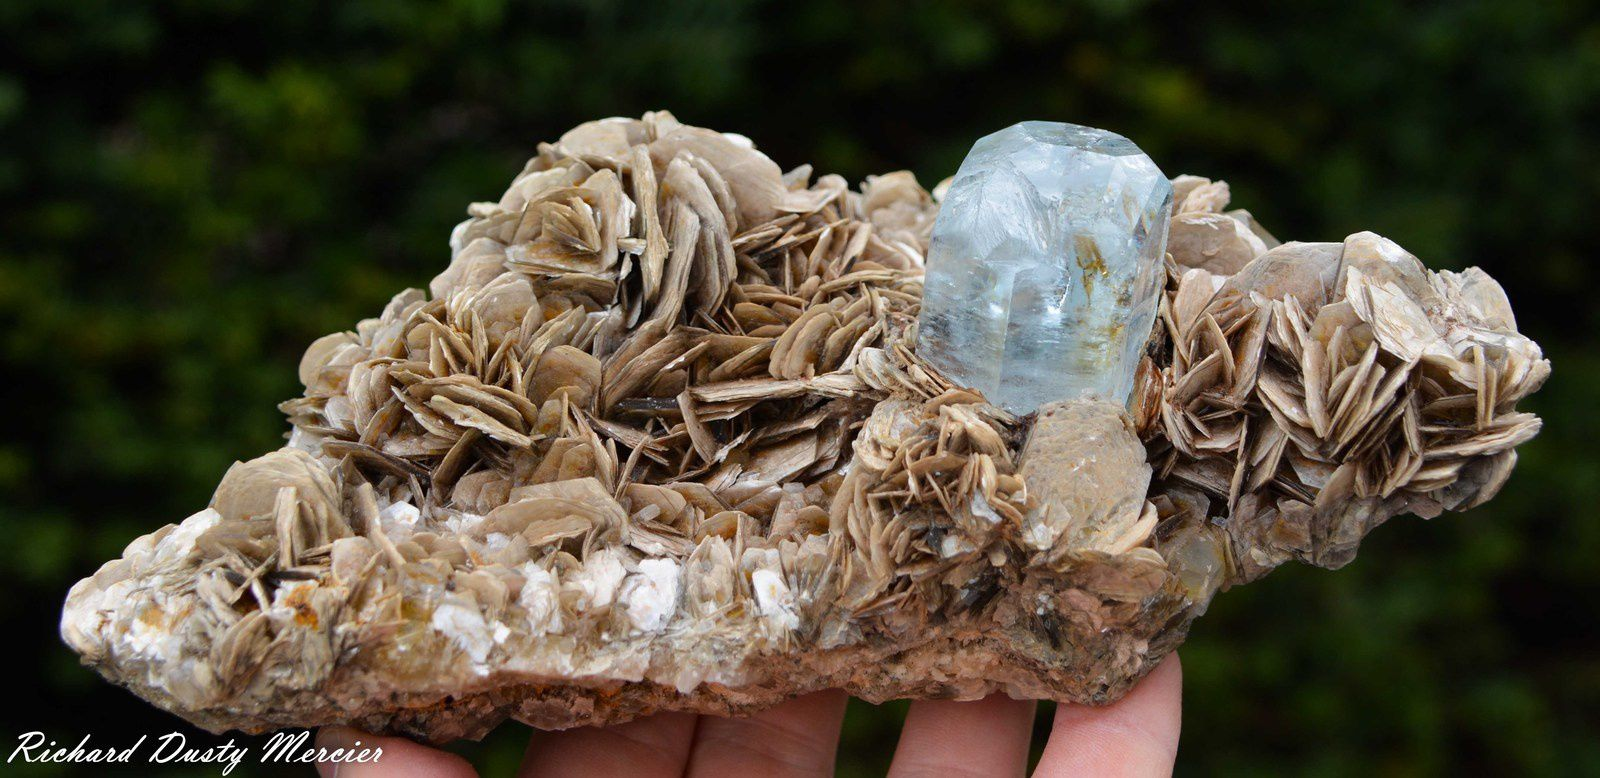 gemmy blue Aquamarine with Muscovite from Fiker Mine, Nagar Valley, Gilgit District, Gilgit-Baltistan, Northern Areas of Pakistan